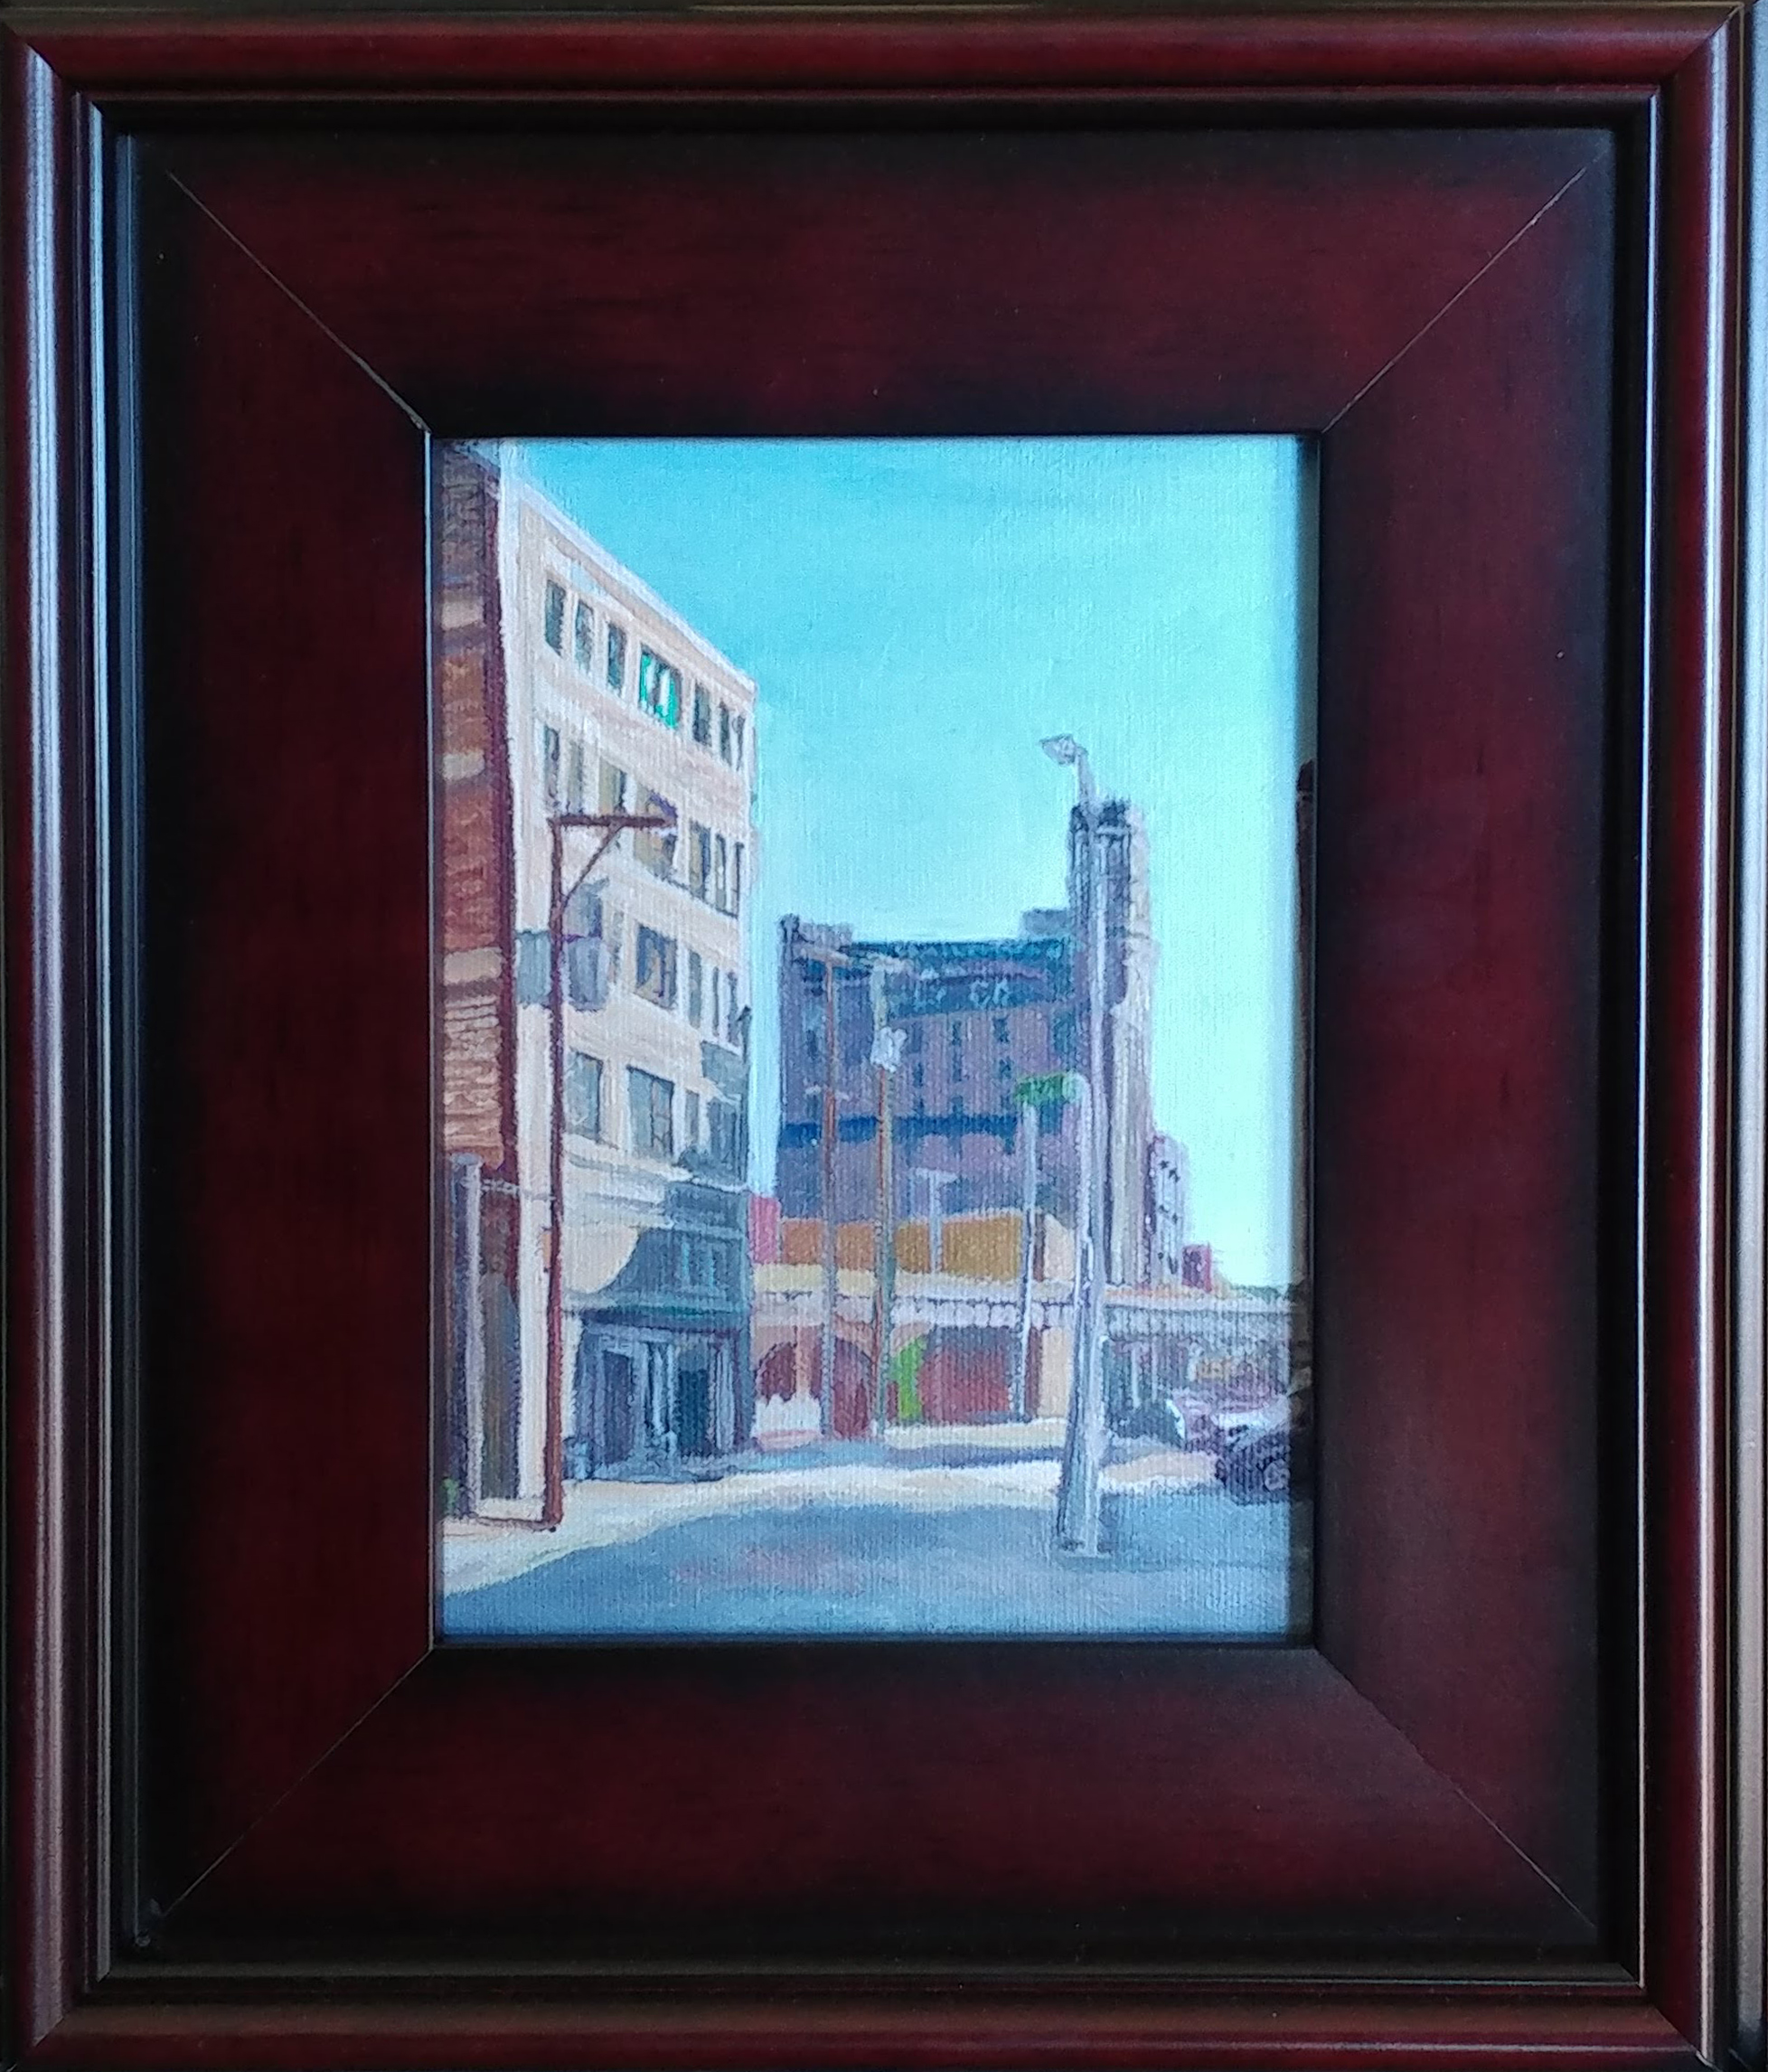 West Bottoms 03 KCK. 6X8 oil on board with 11X14 mahogany frame.